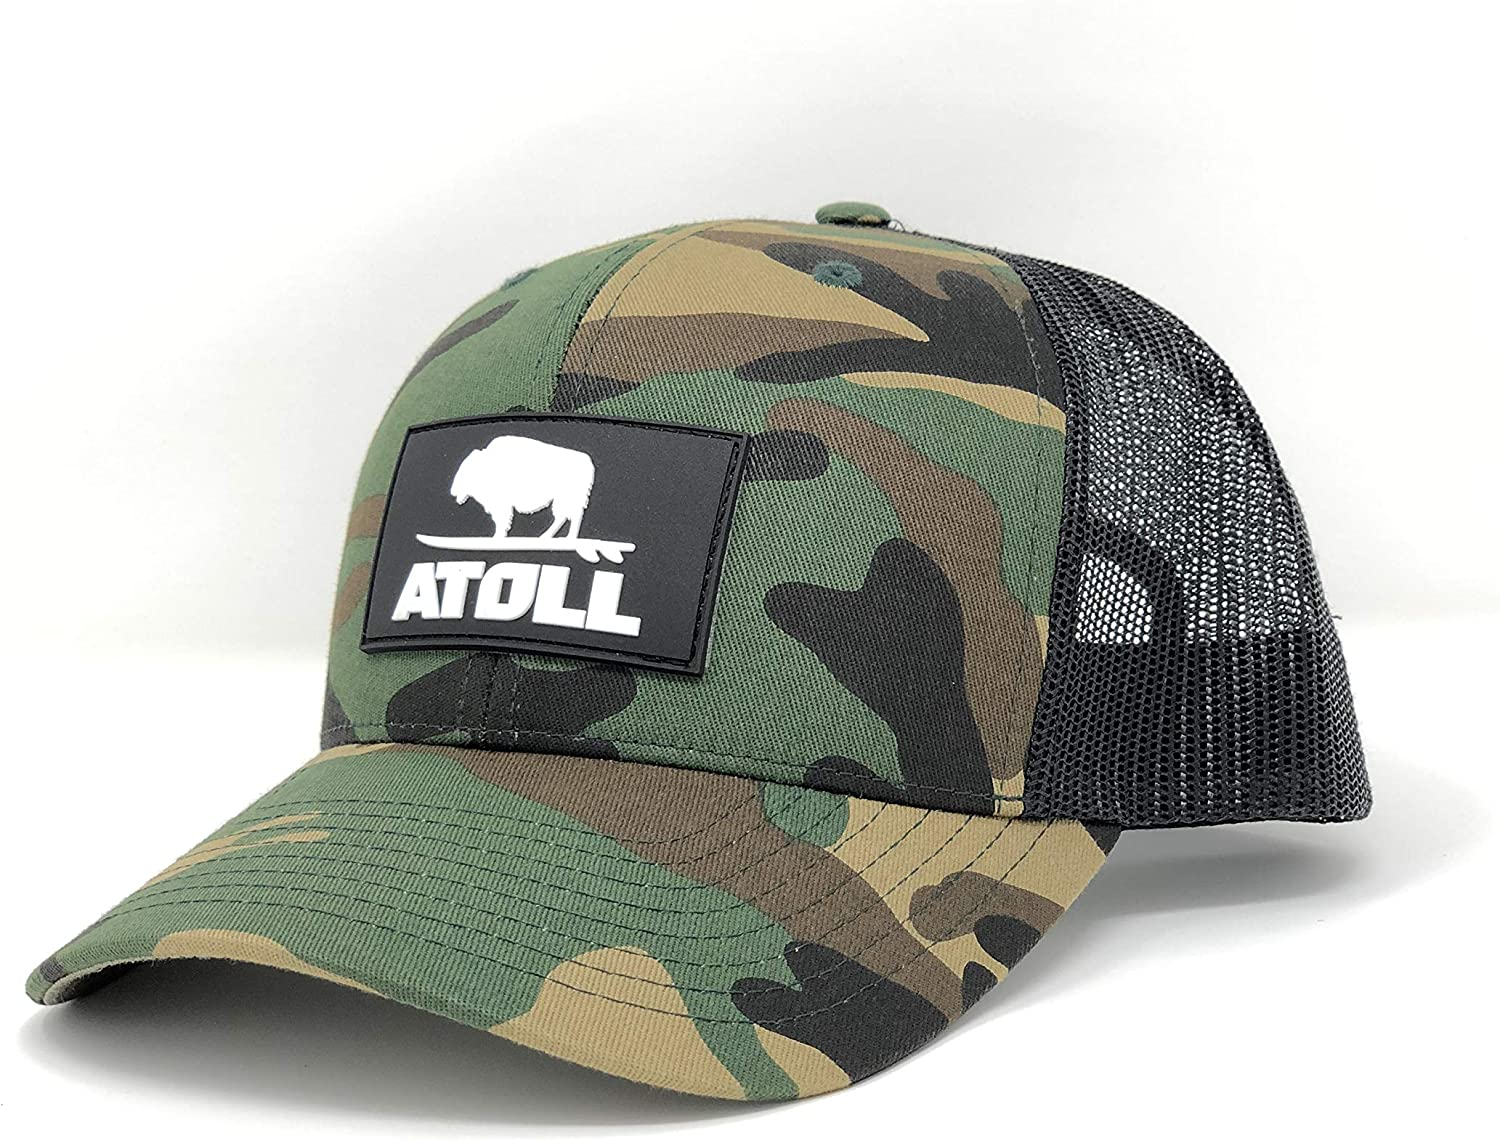 Atoll Baseball Cap Trucker Hat - 7 Hole Snapback Adjustable Breathable Hat by Atoll SUP Co.